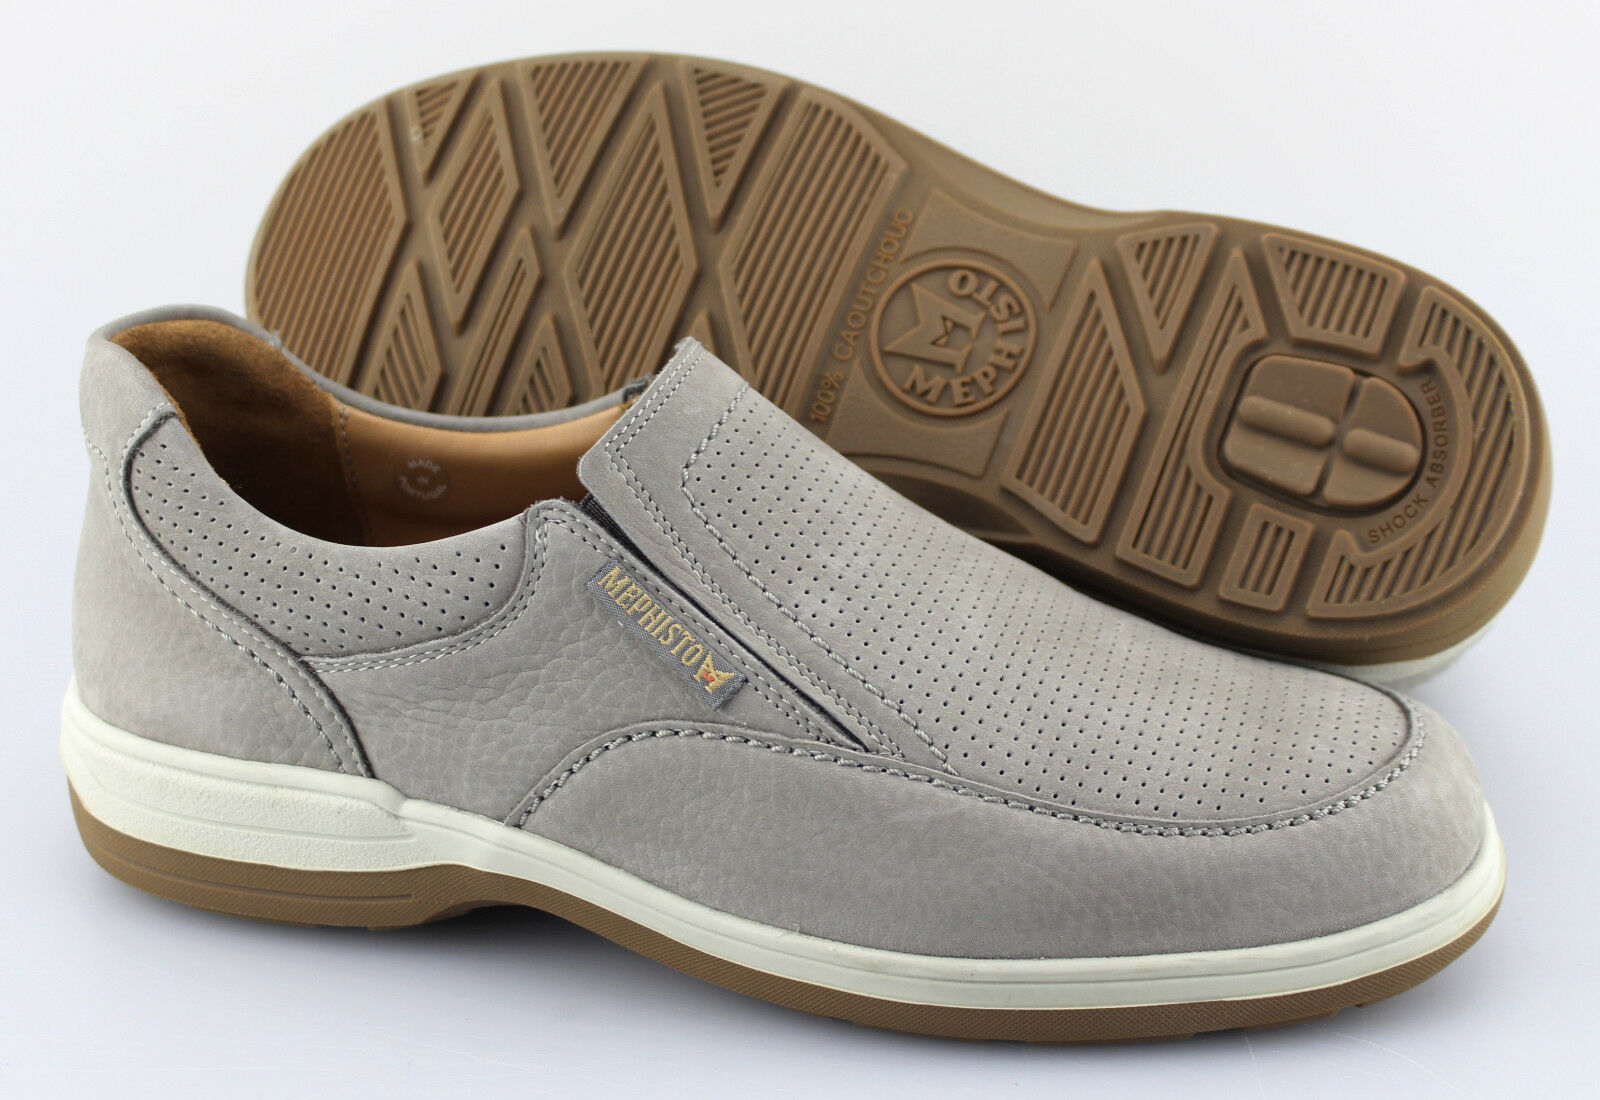 Men's MEPHISTO 'Davy' grigio Leather Perforated Loafers Dimensione US 8 EUR 7.5